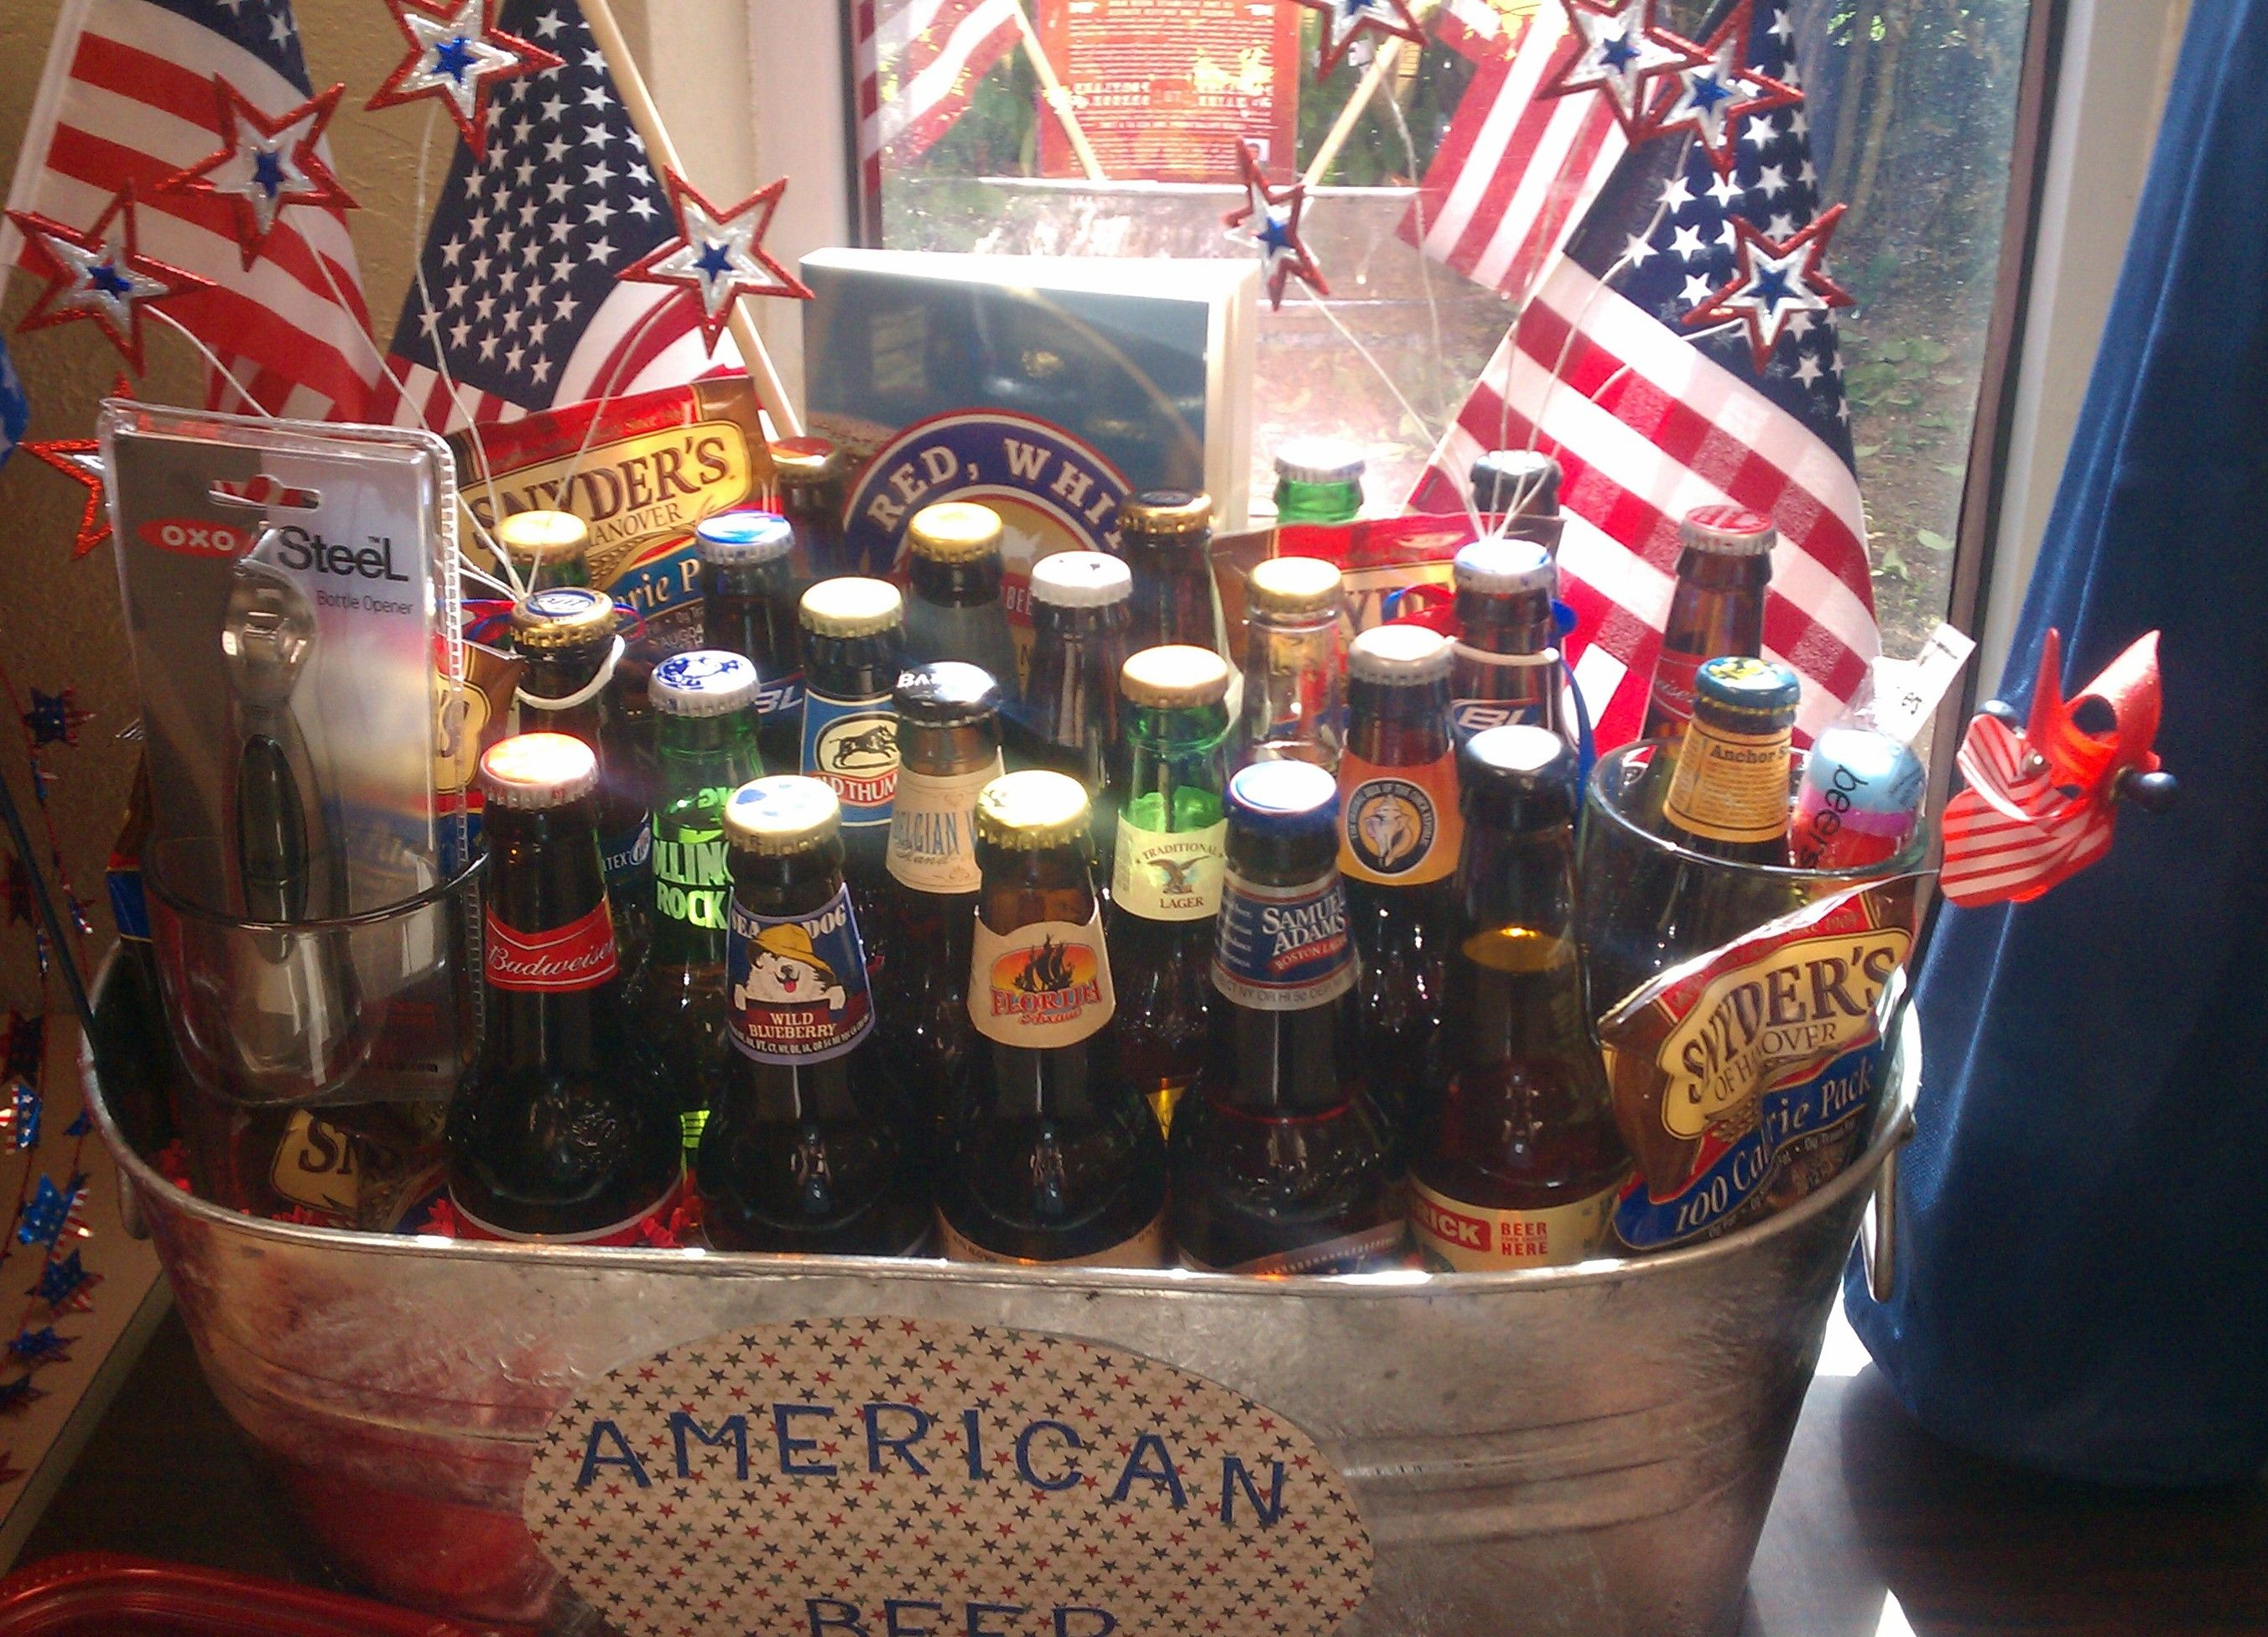 American Beer Basket